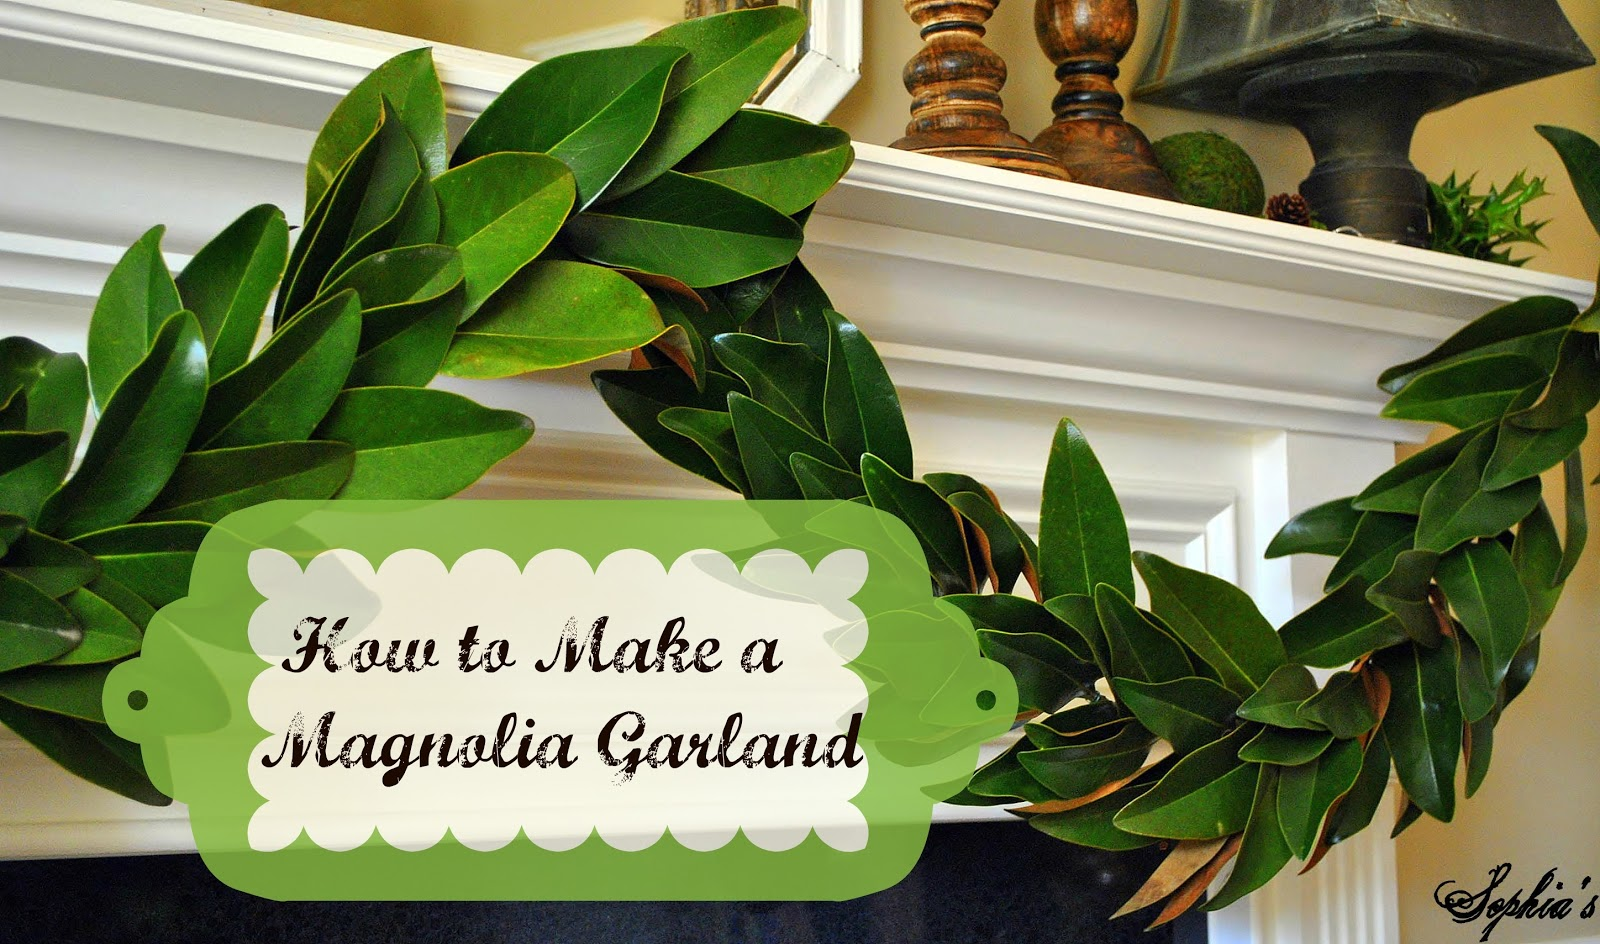 Sophia s  How to Make a Garland with Magnolia Leaves How to Make a Garland with Magnolia Leaves